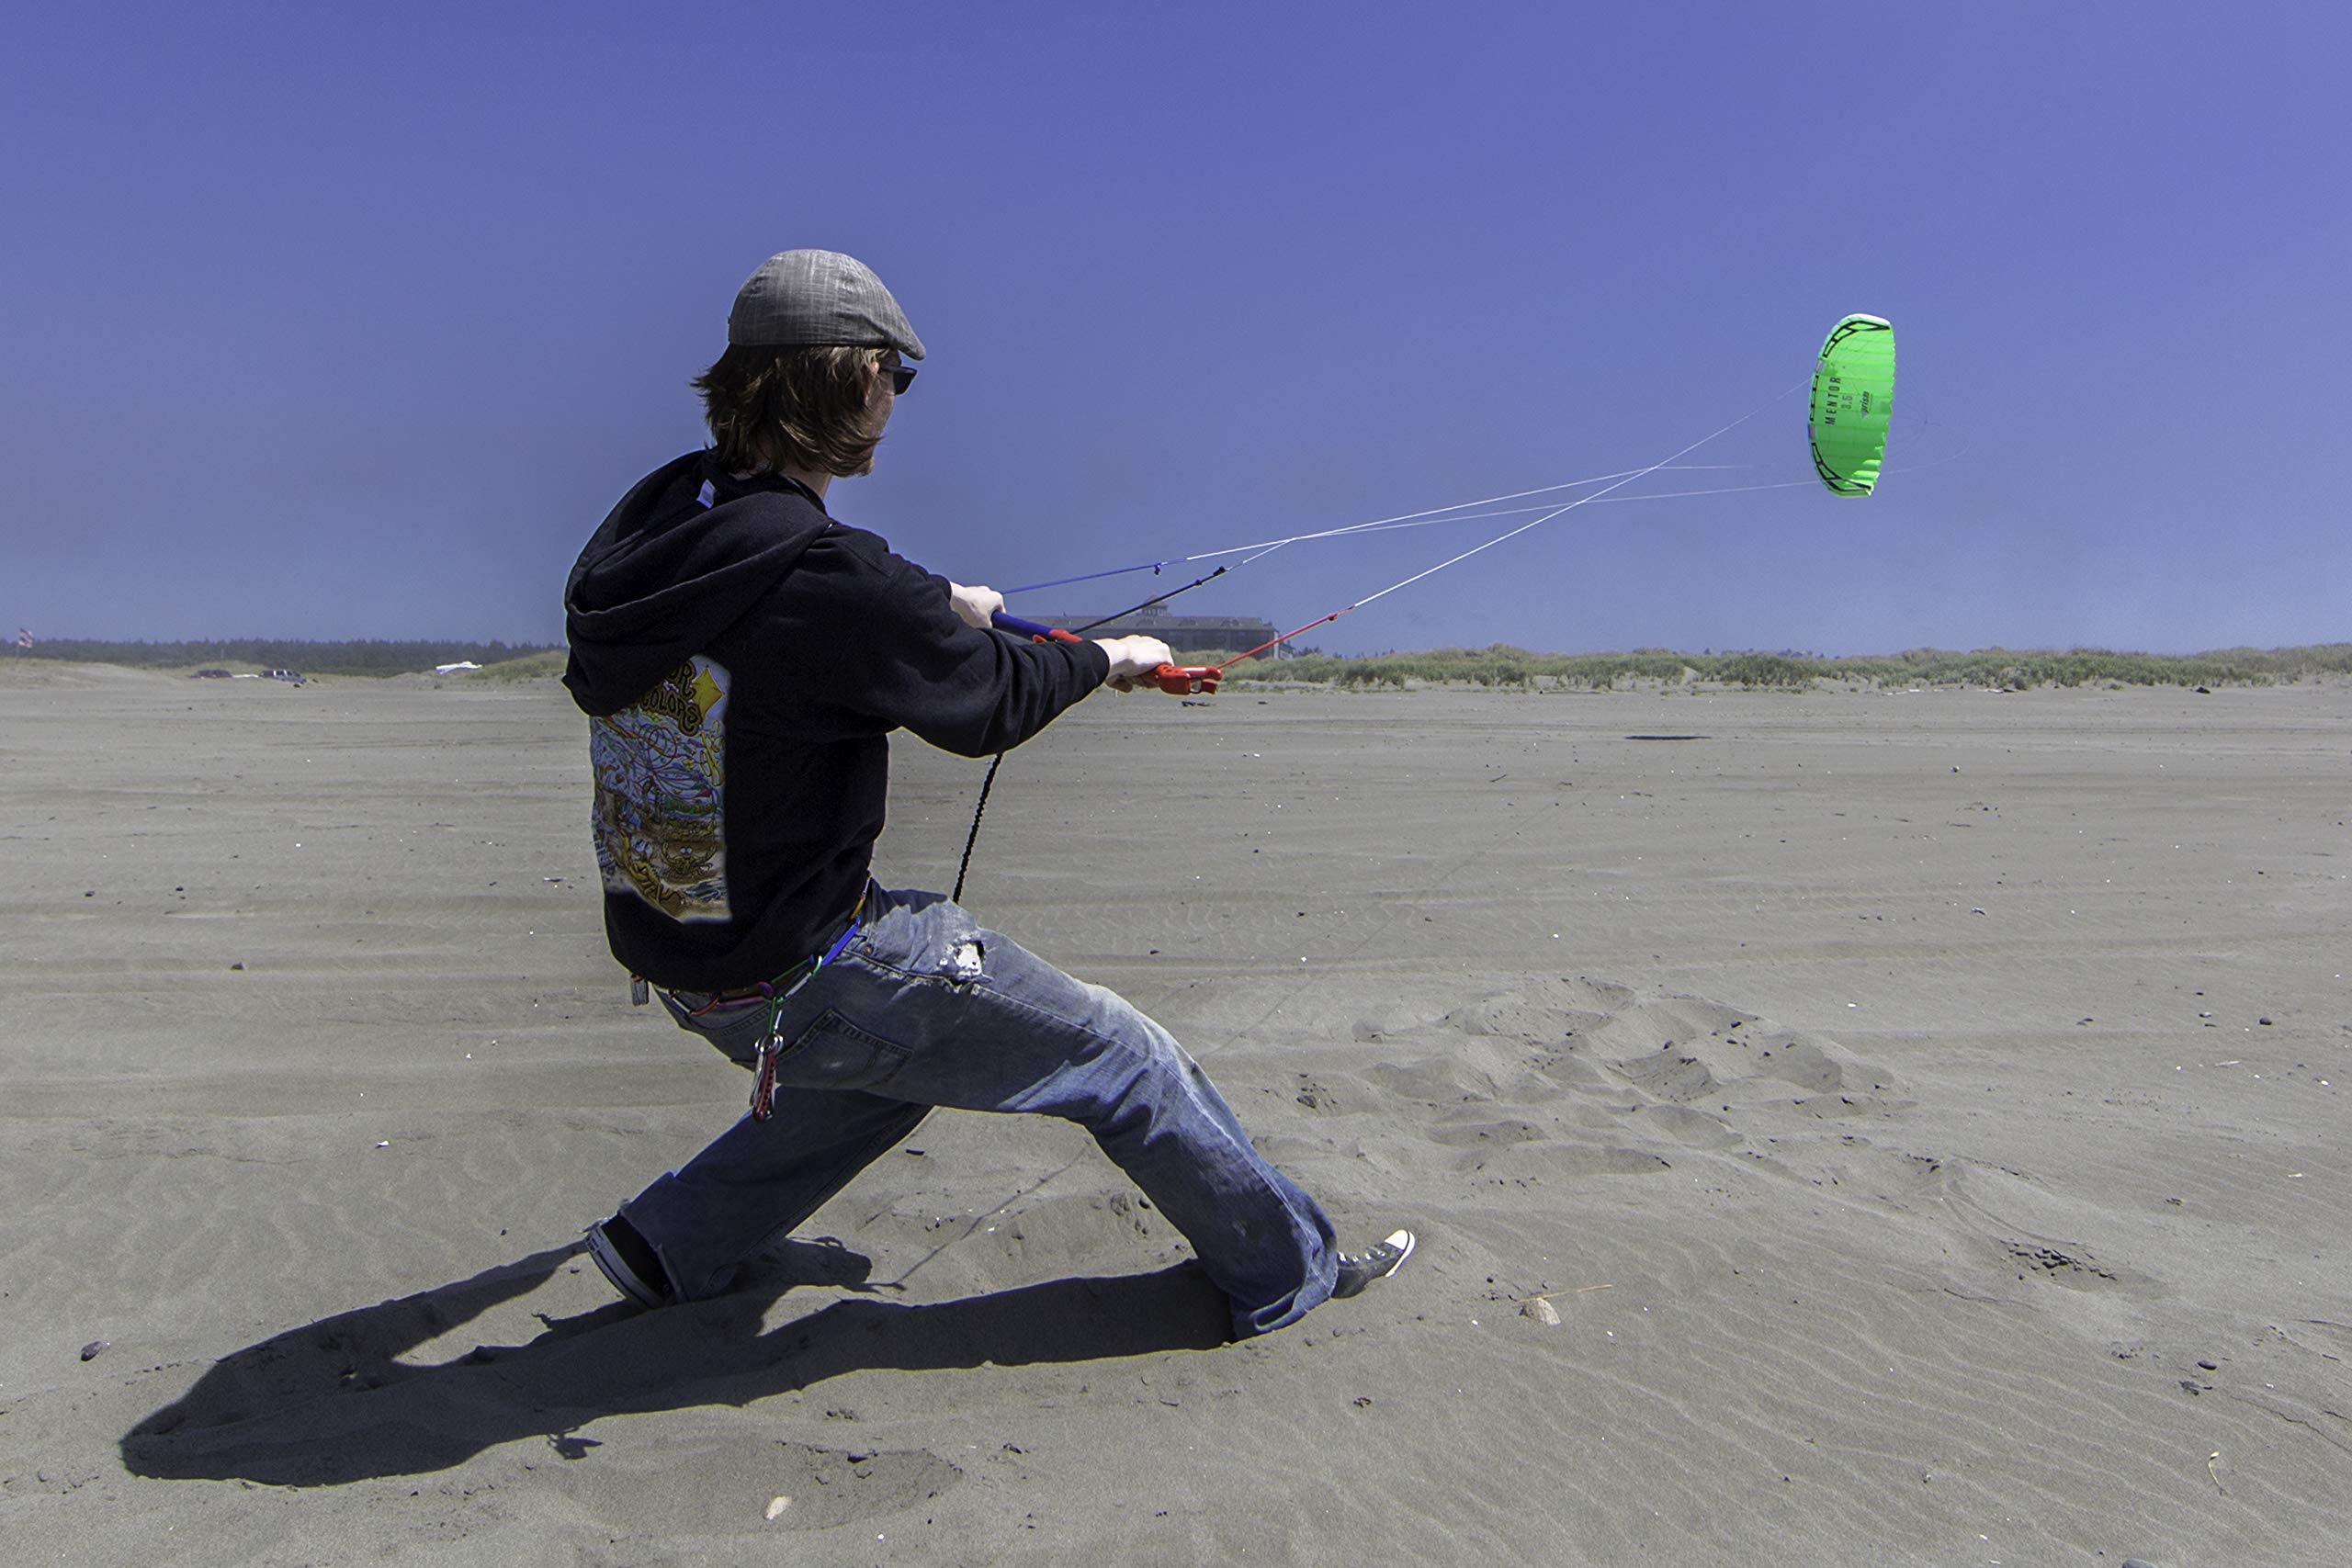 Prism Mentor 3.5m Water-relaunchable Three-line Power Kite Ready to Fly with Control bar, Ground Stake and Quick Release Safety Leash by Prism Kite Technology (Image #3)